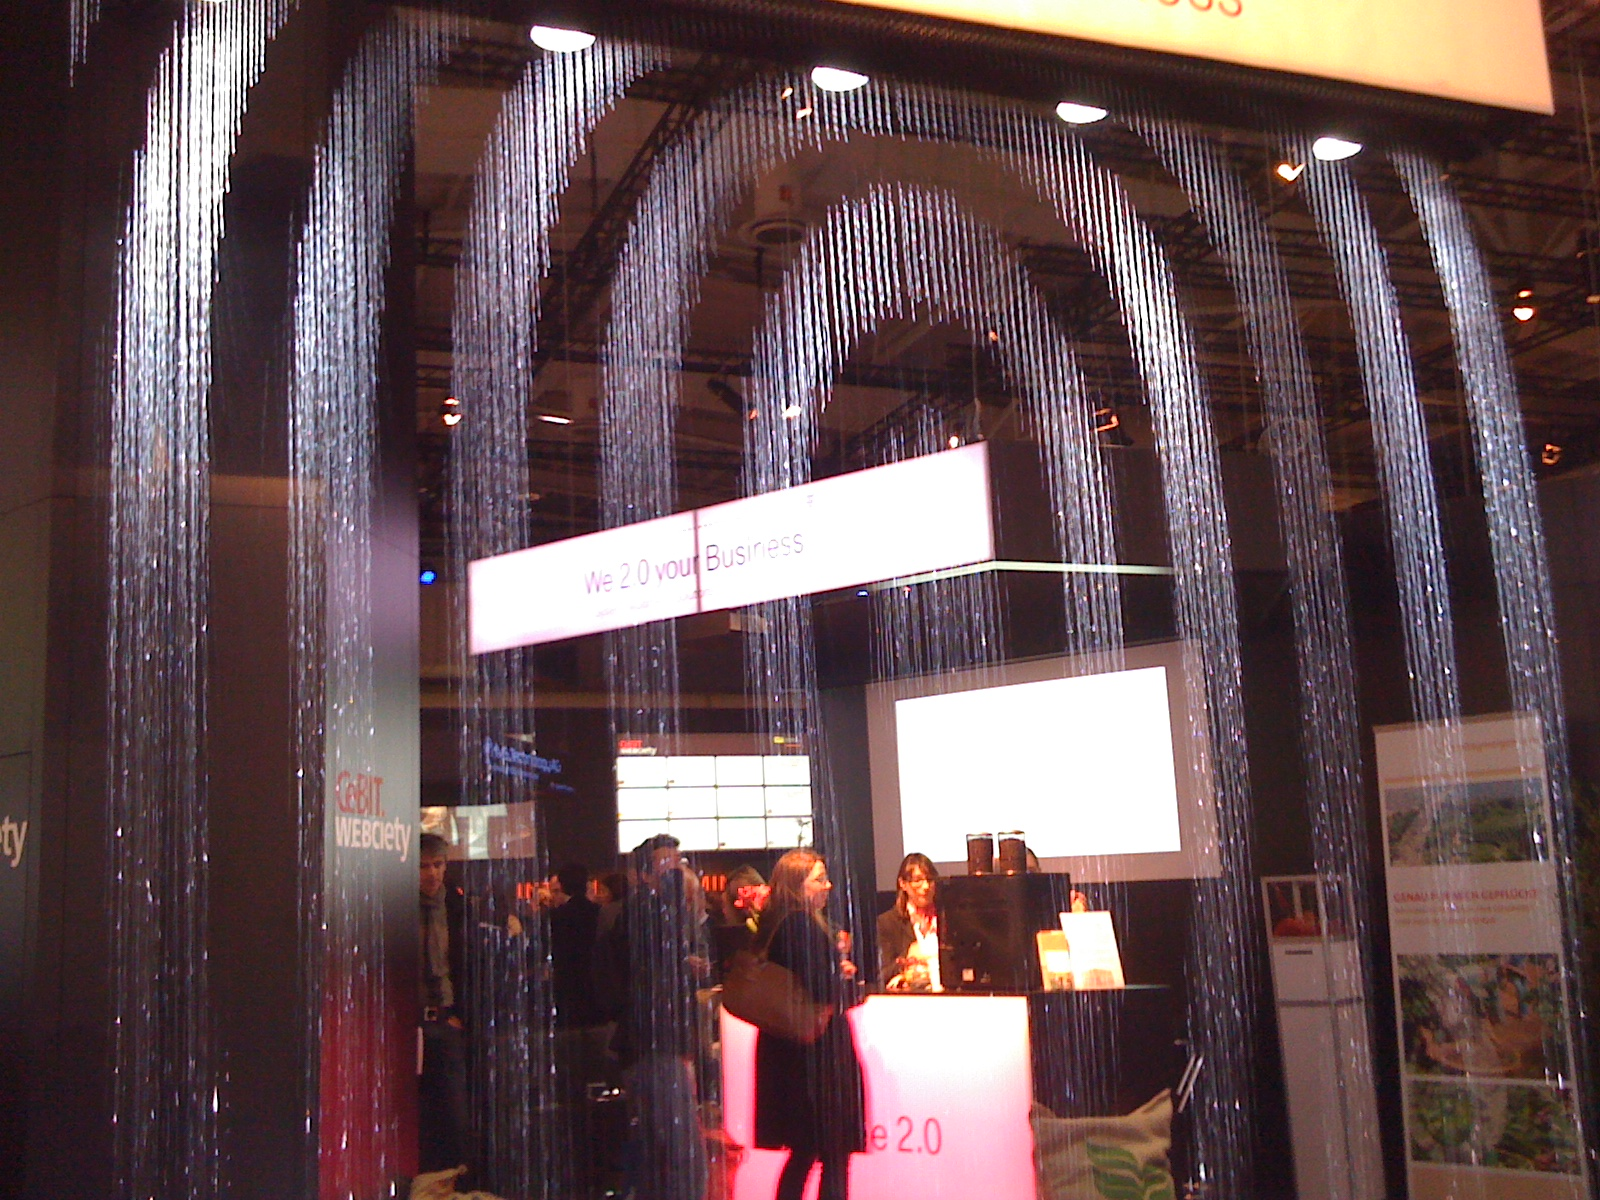 Wasserfall Cebit 2010 - Webciety